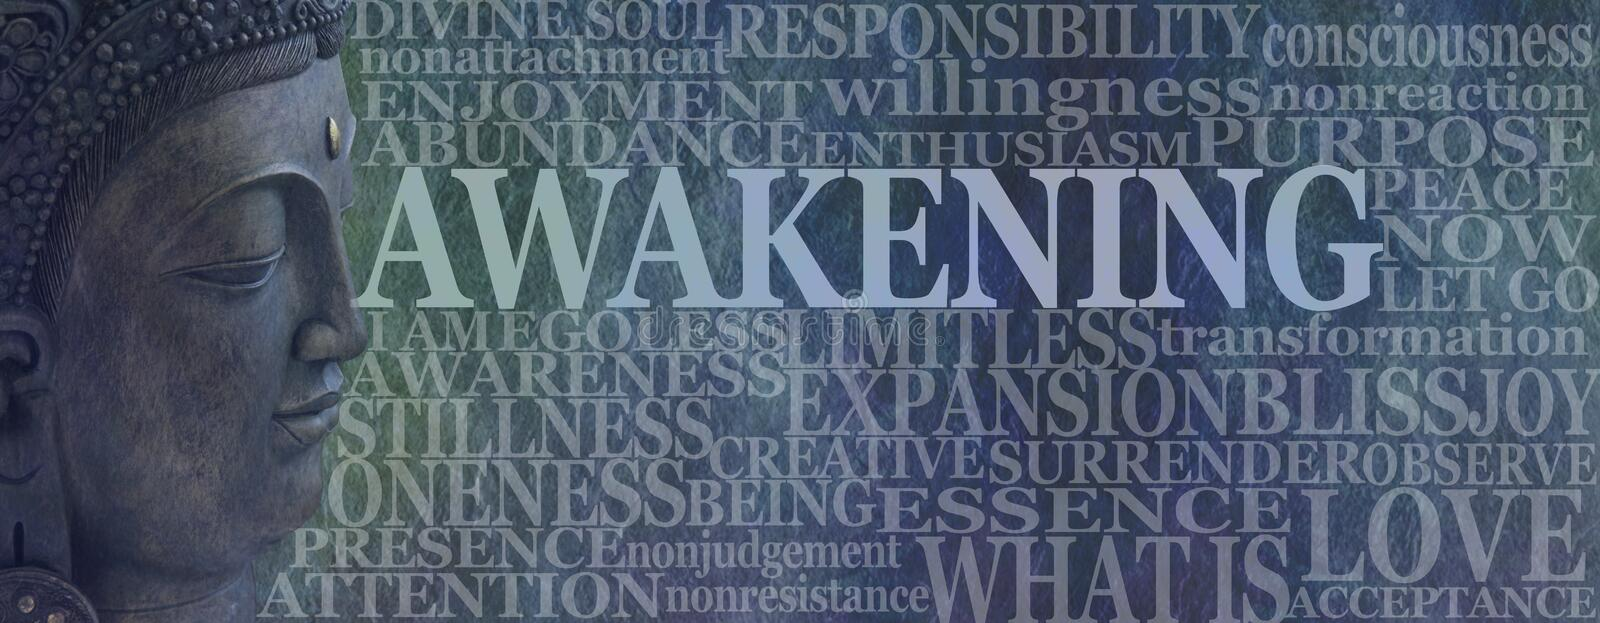 Buddha Spiritual Awakening Word Tag Cloud. Deity Buddha head on left with the word AWAKENING beside surrounded by a word cloud on a rustic blue background royalty free stock photos